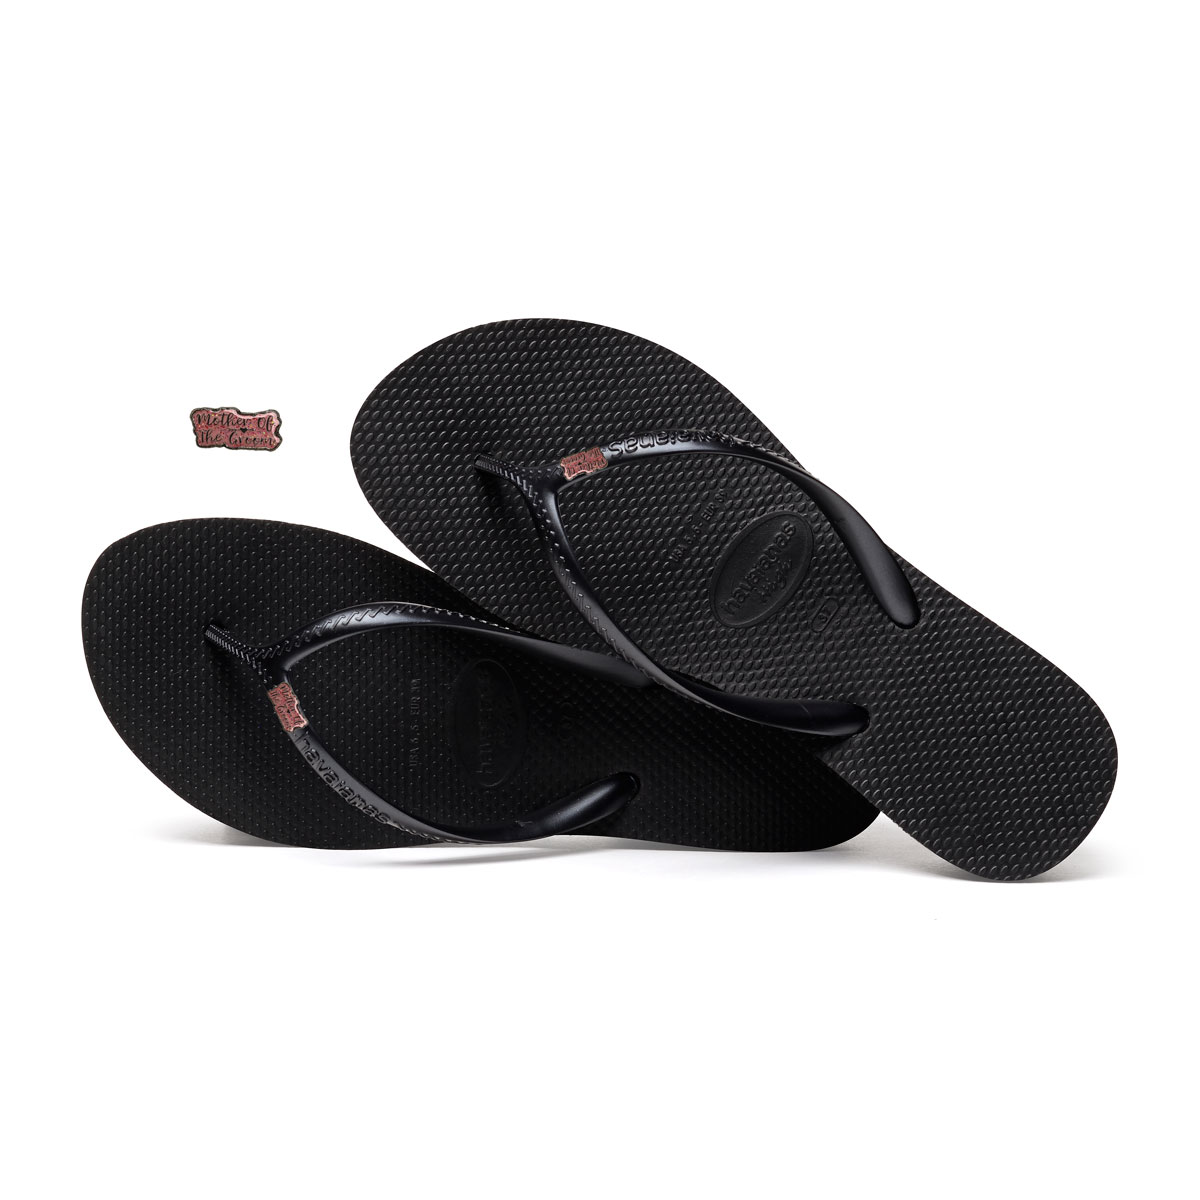 Havaianas Heel Black Flip-Flops with Pink Glitter Mother of the Groom Pin